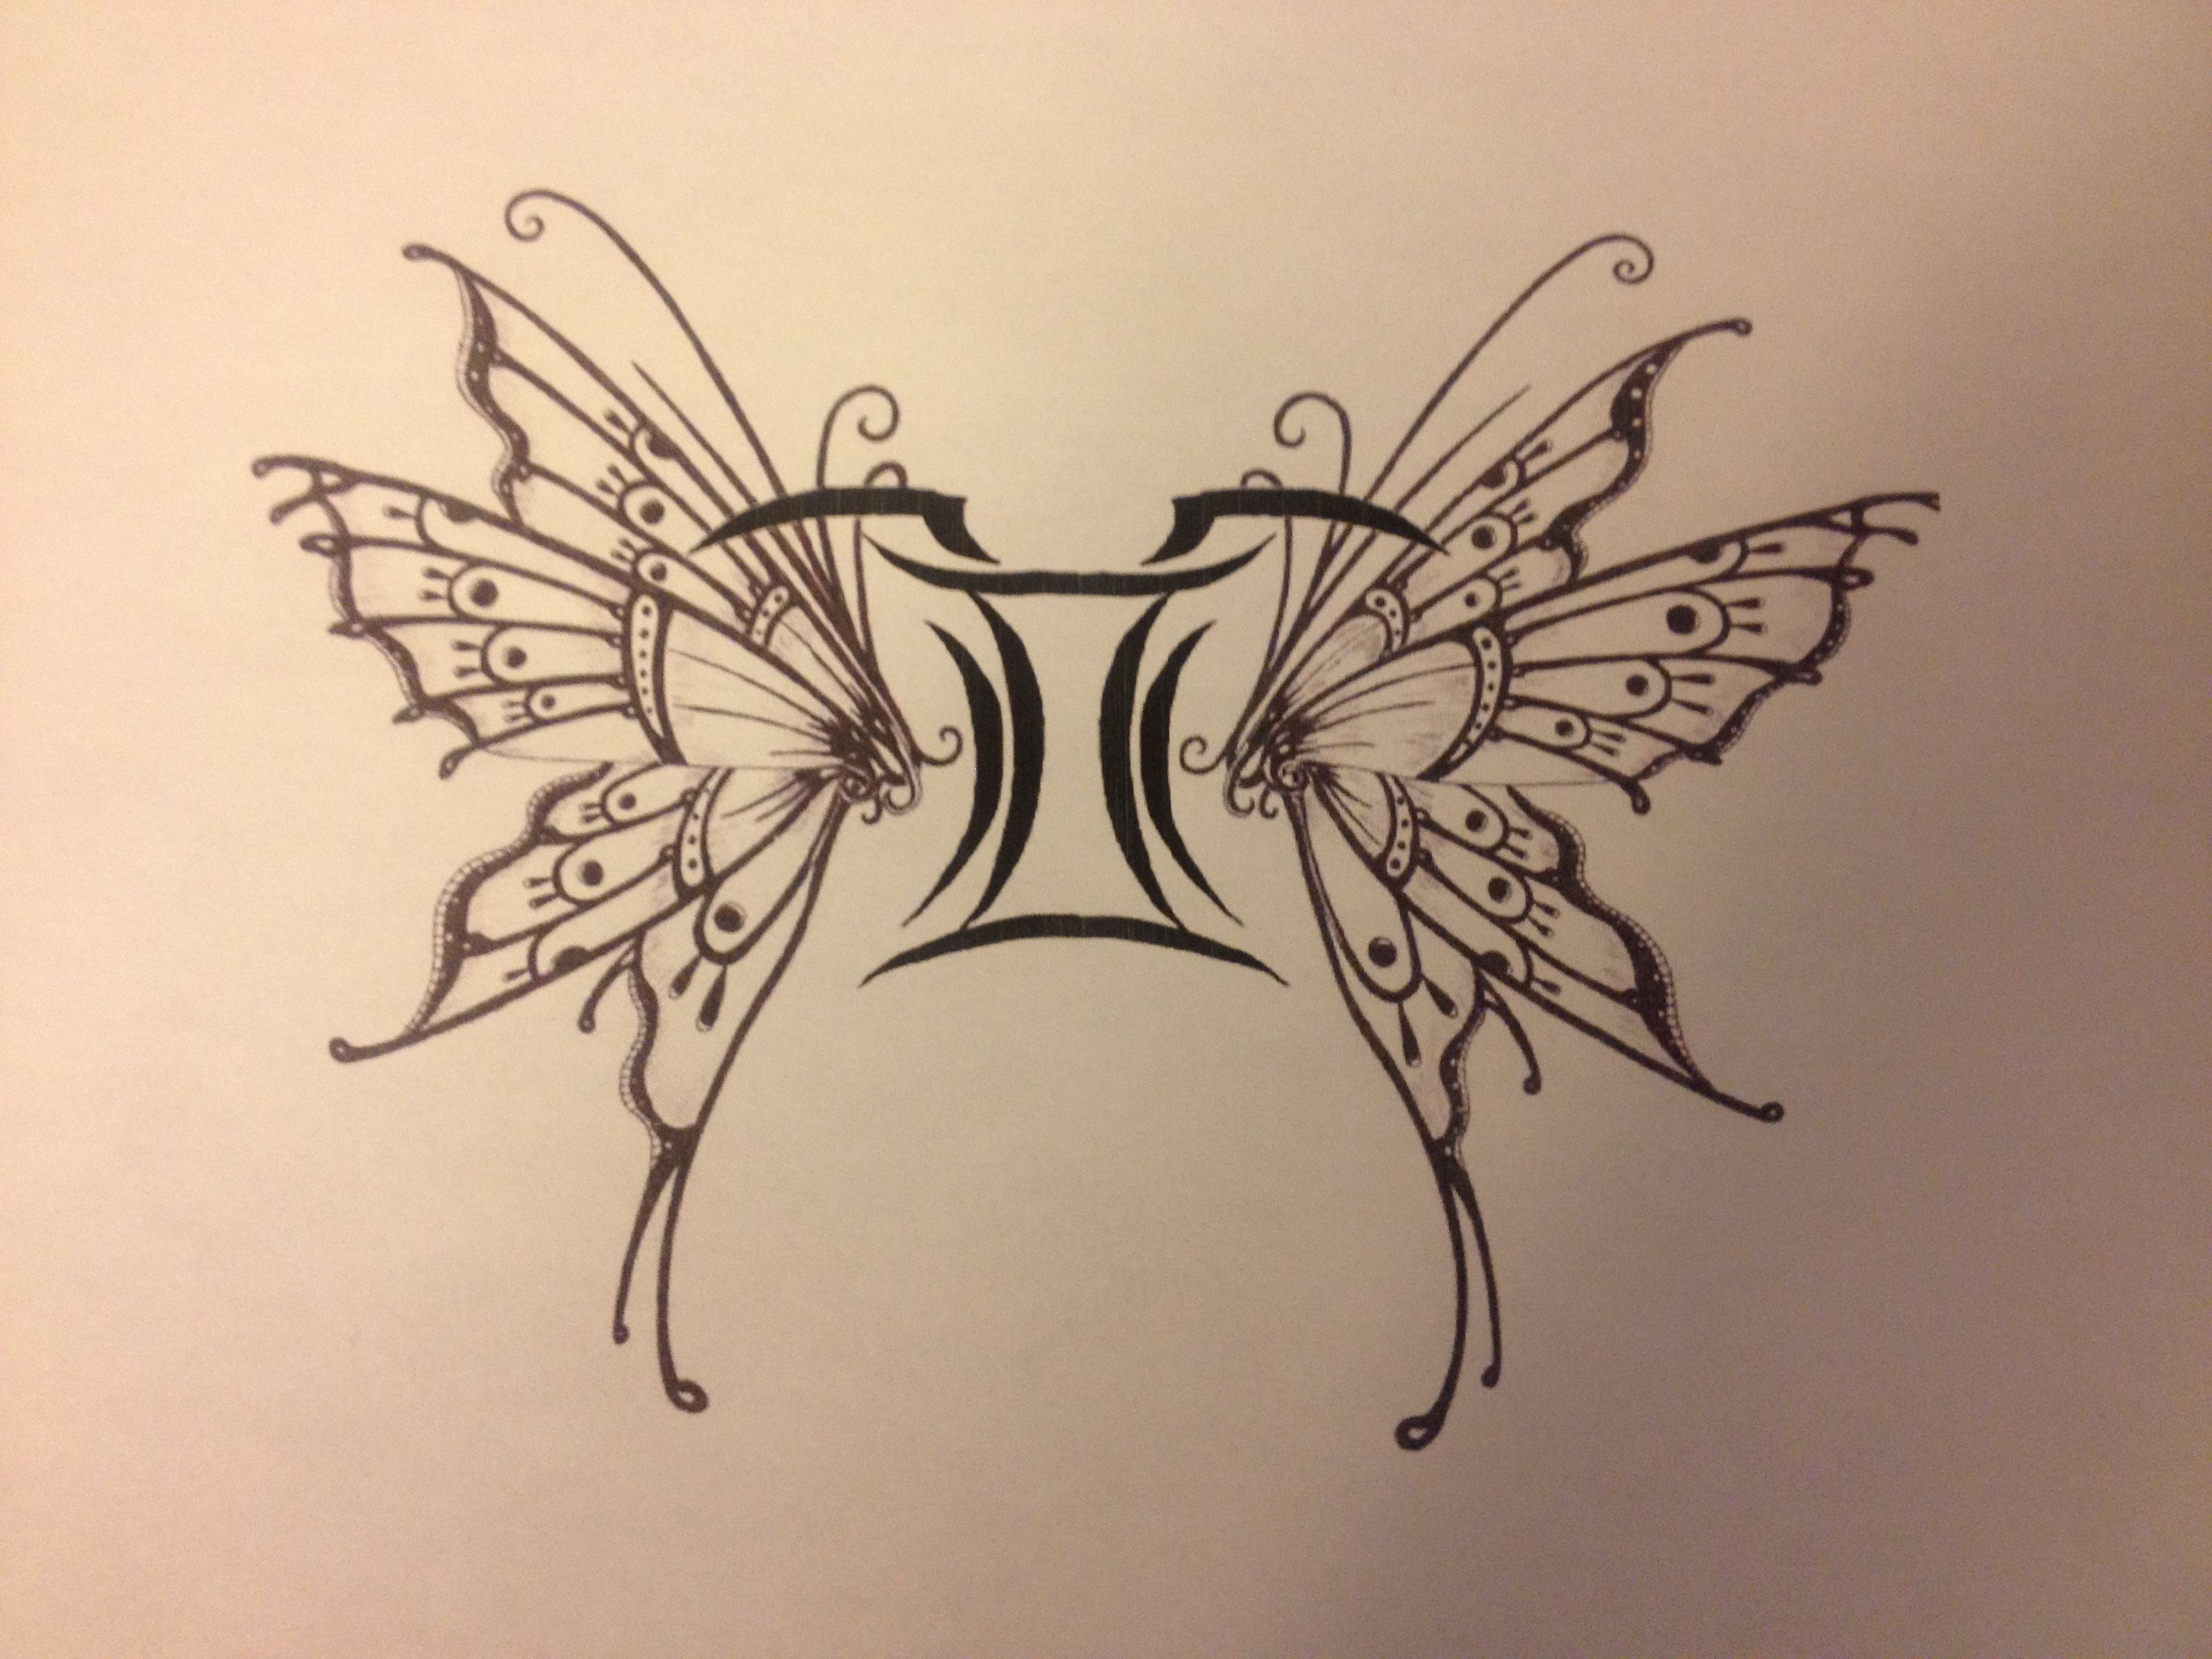 41. Butterfly Gemini Tattoo